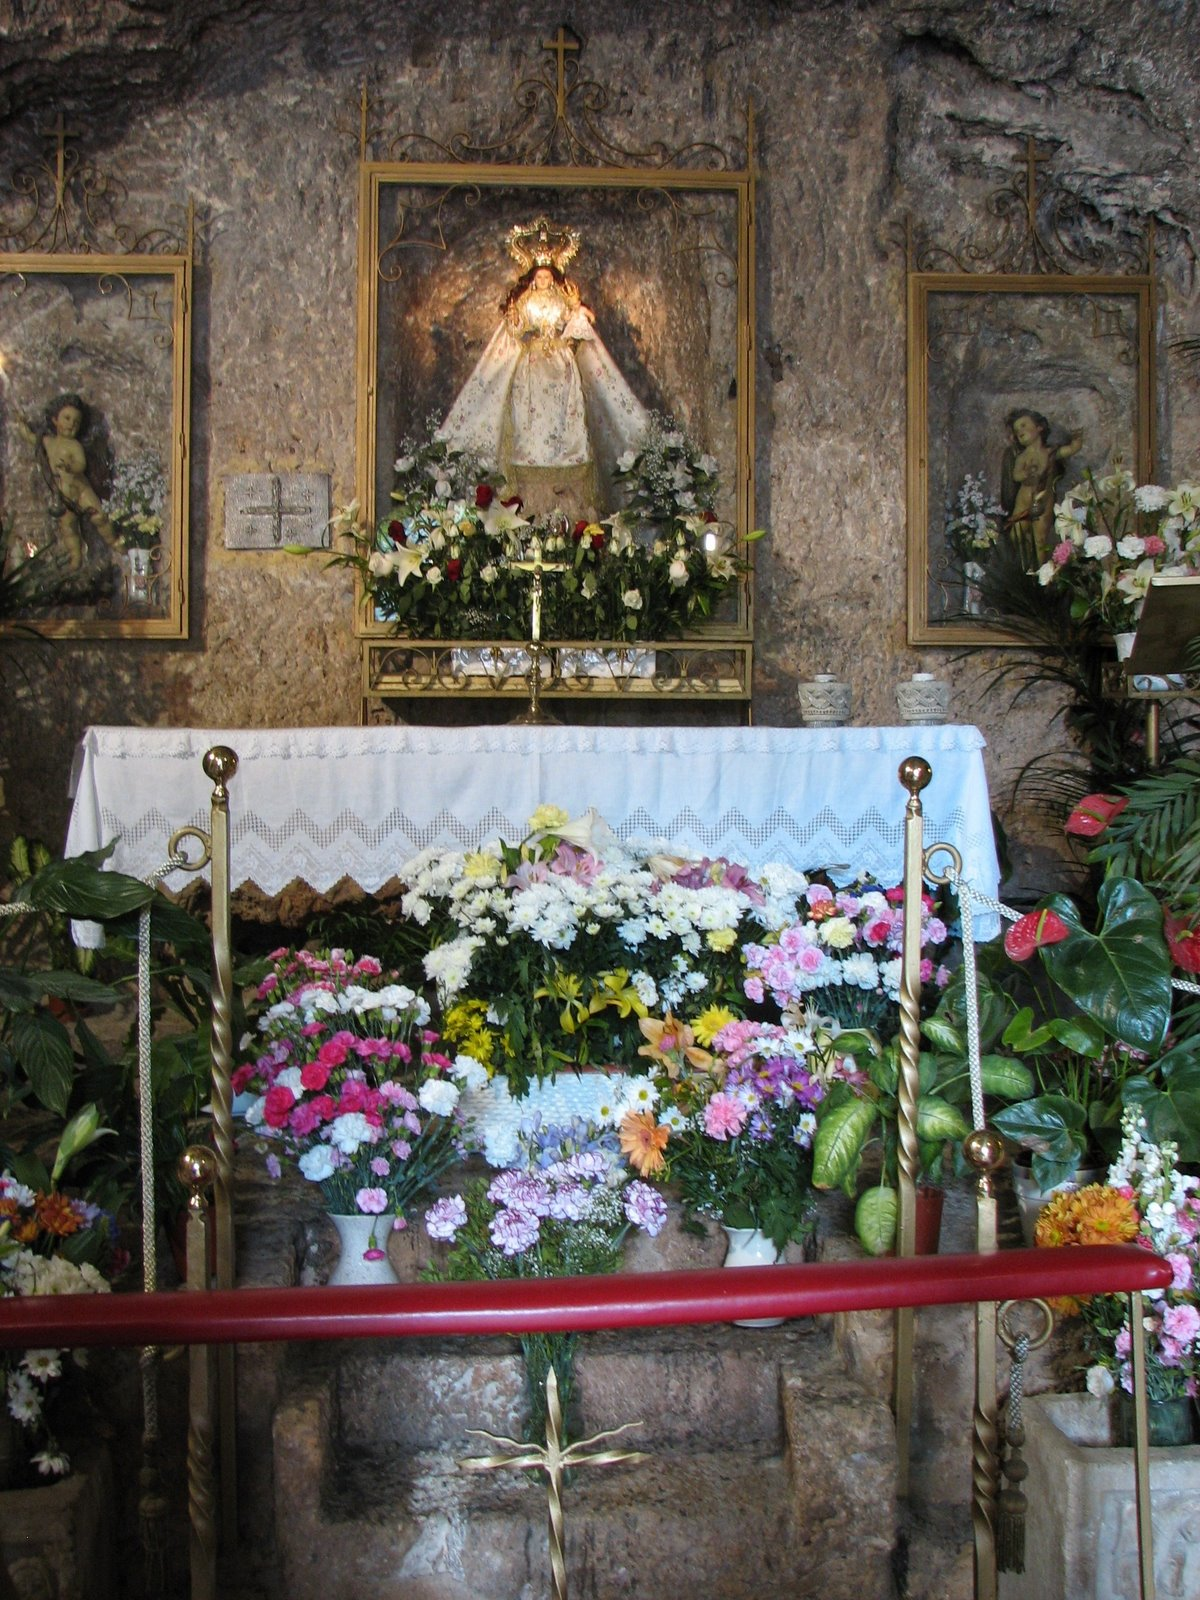 Santuario de la Virgen de la Pena, a tribute to the patron saint of Mijas carved out of pure rock. The shrine dates back to 1586 when an image of the Virgin Mary miraculously manifested there.